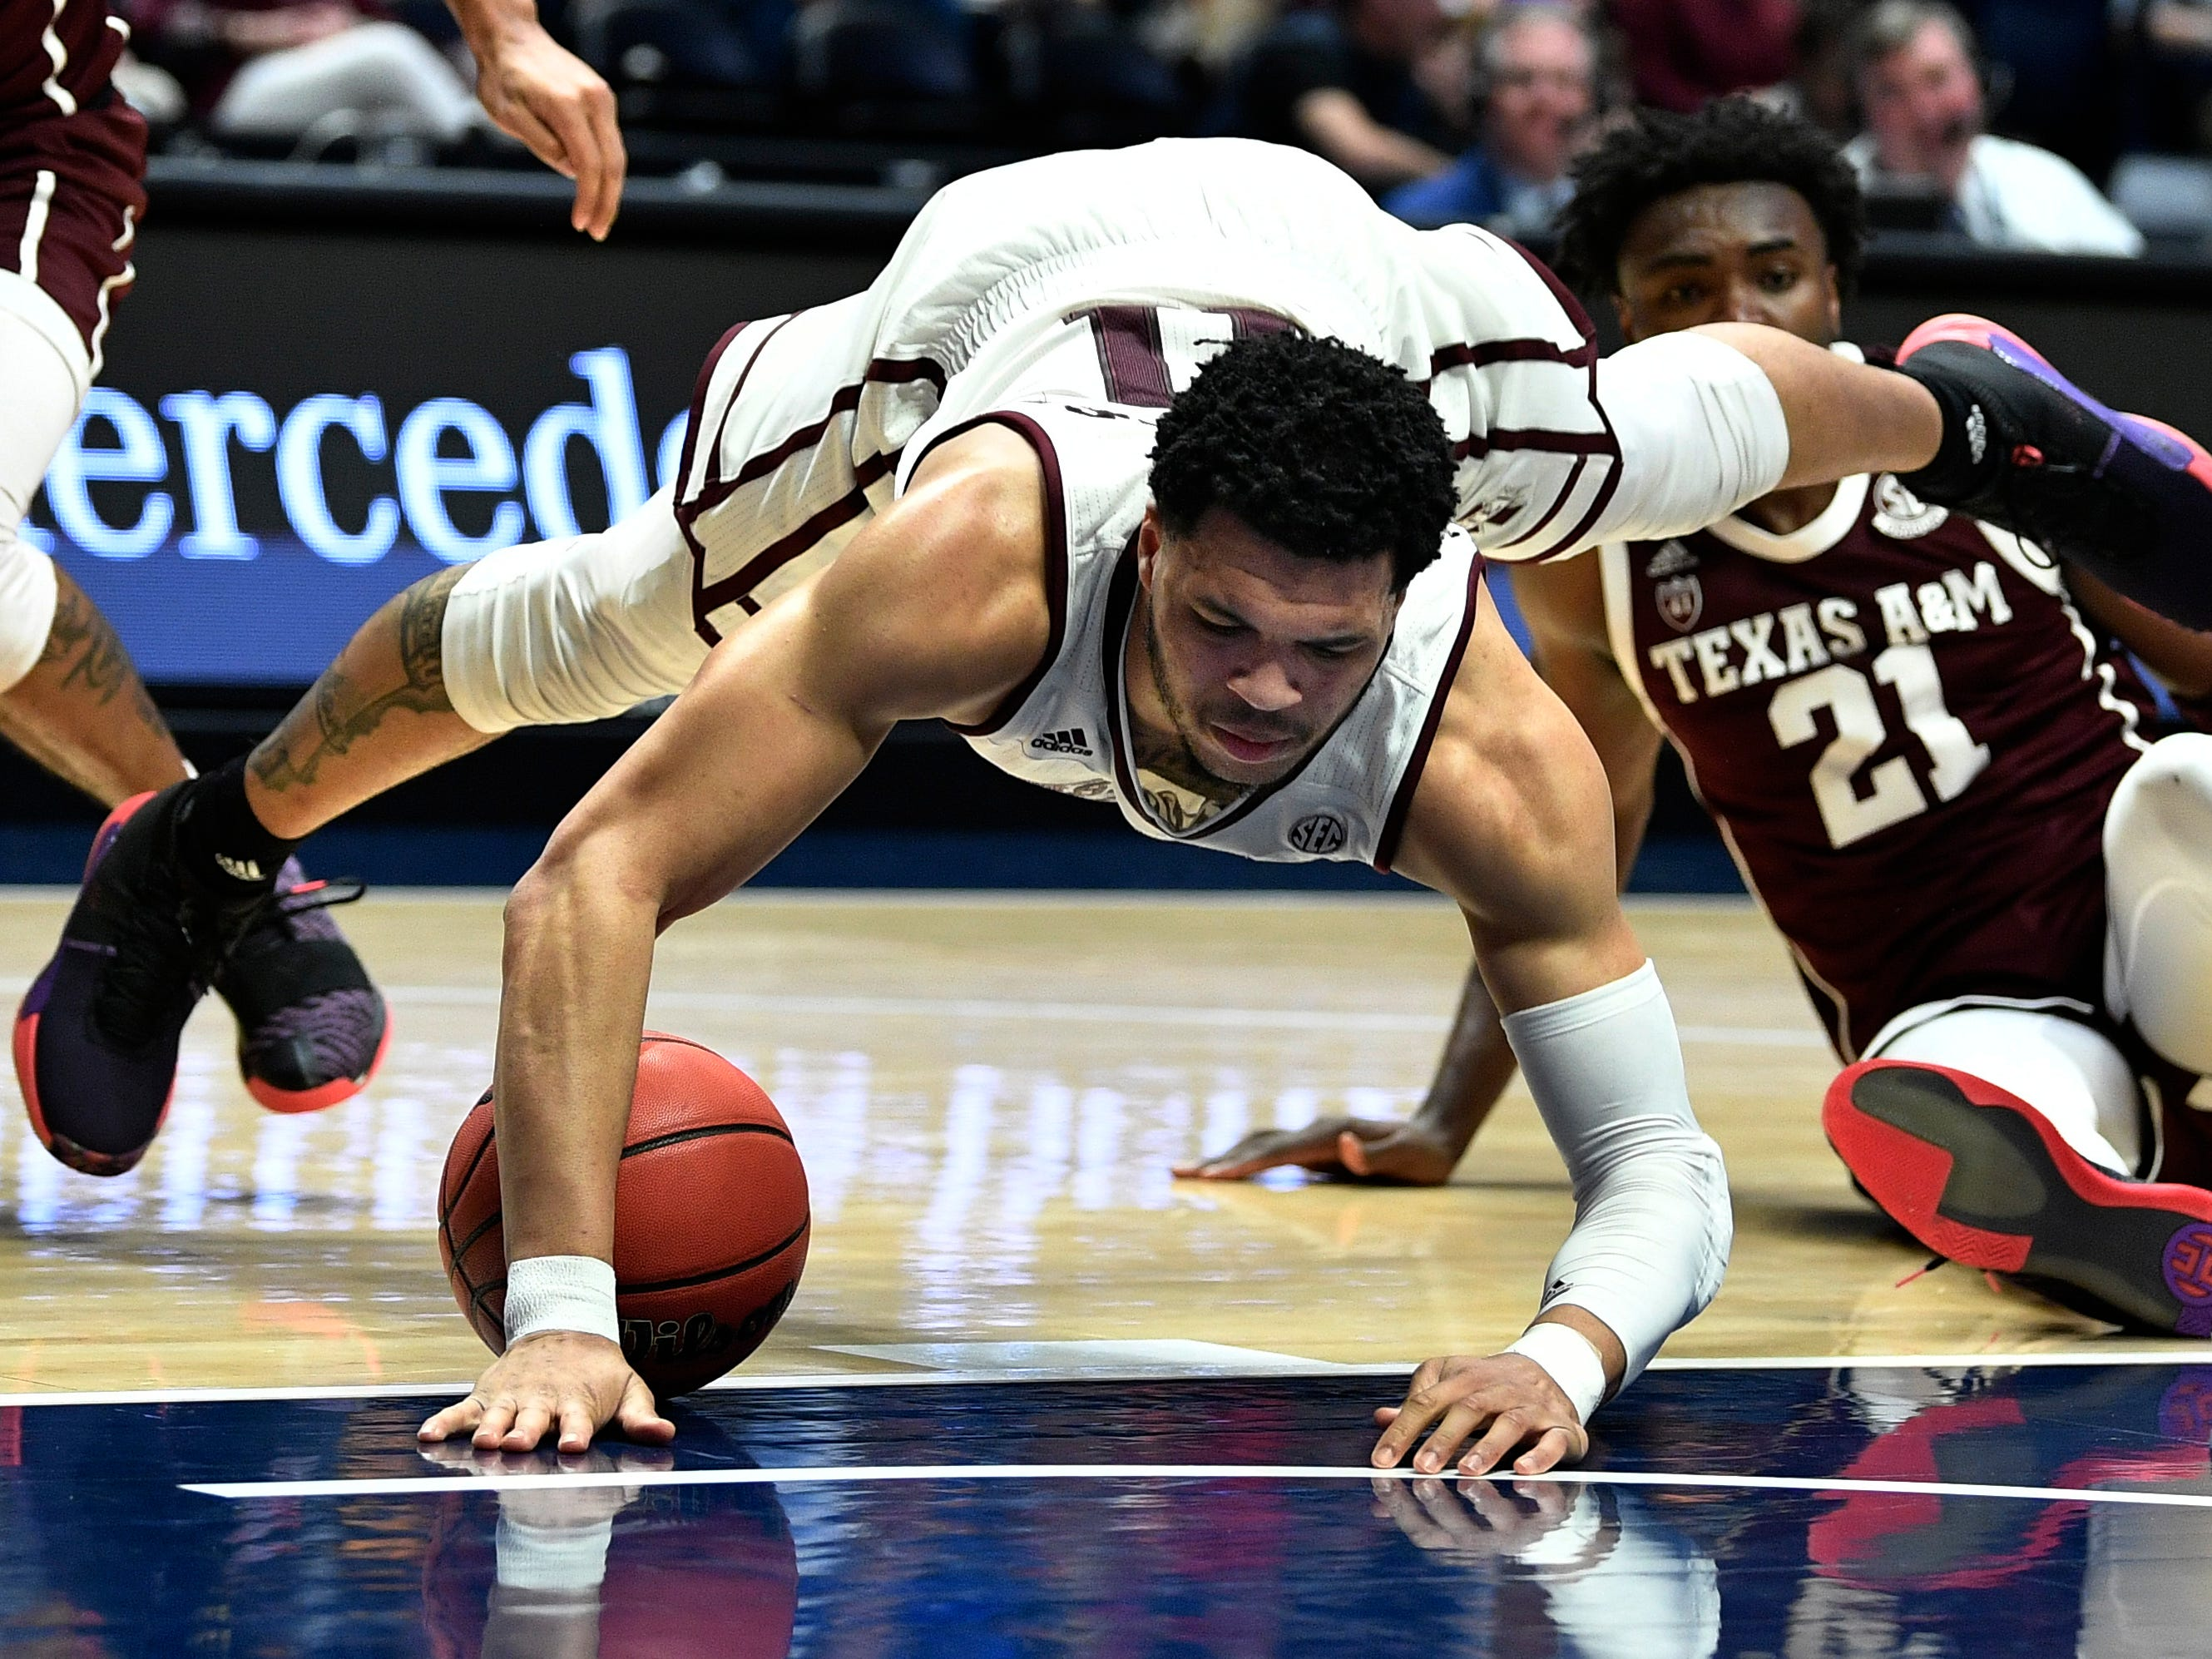 Mississippi State guard Quinndary Weatherspoon (11) gets tripped up during the first half of the SEC Men's Basketball Tournament game against Texas A&M at Bridgestone Arena in Nashville, Tenn., Thursday, March 14, 2019.